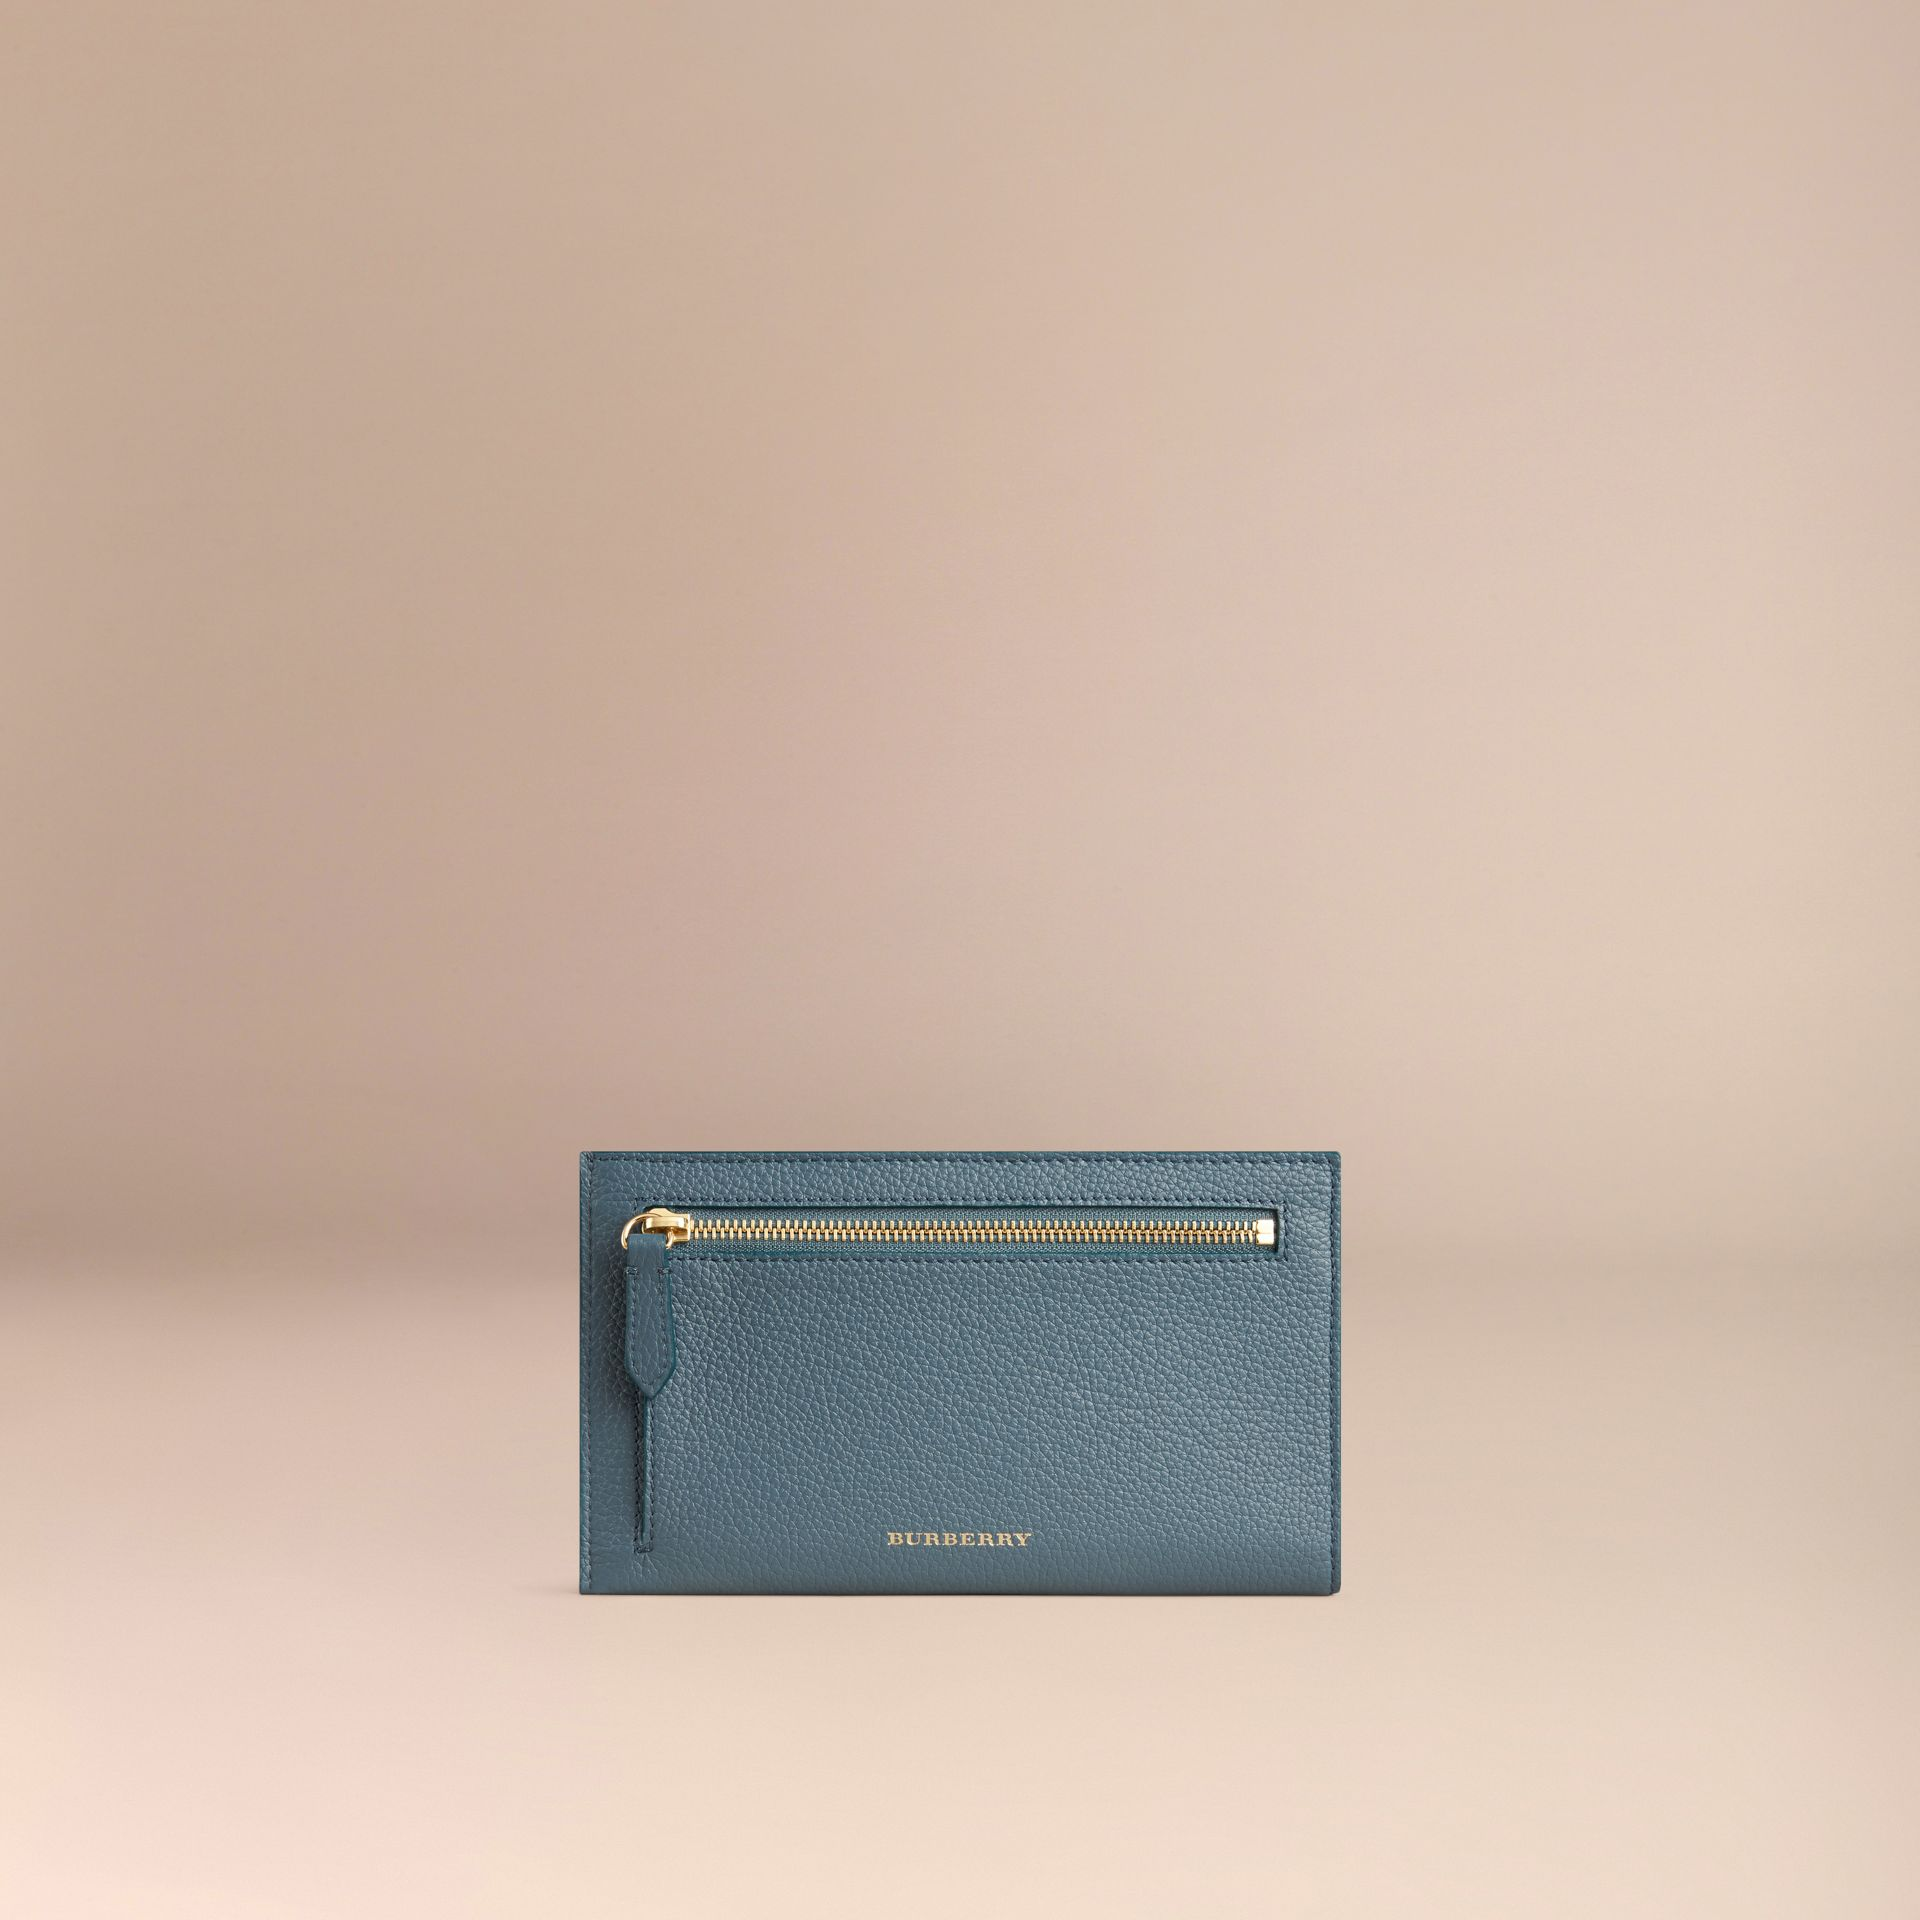 Grainy Leather Travel Case in Dusty Teal | Burberry - gallery image 4